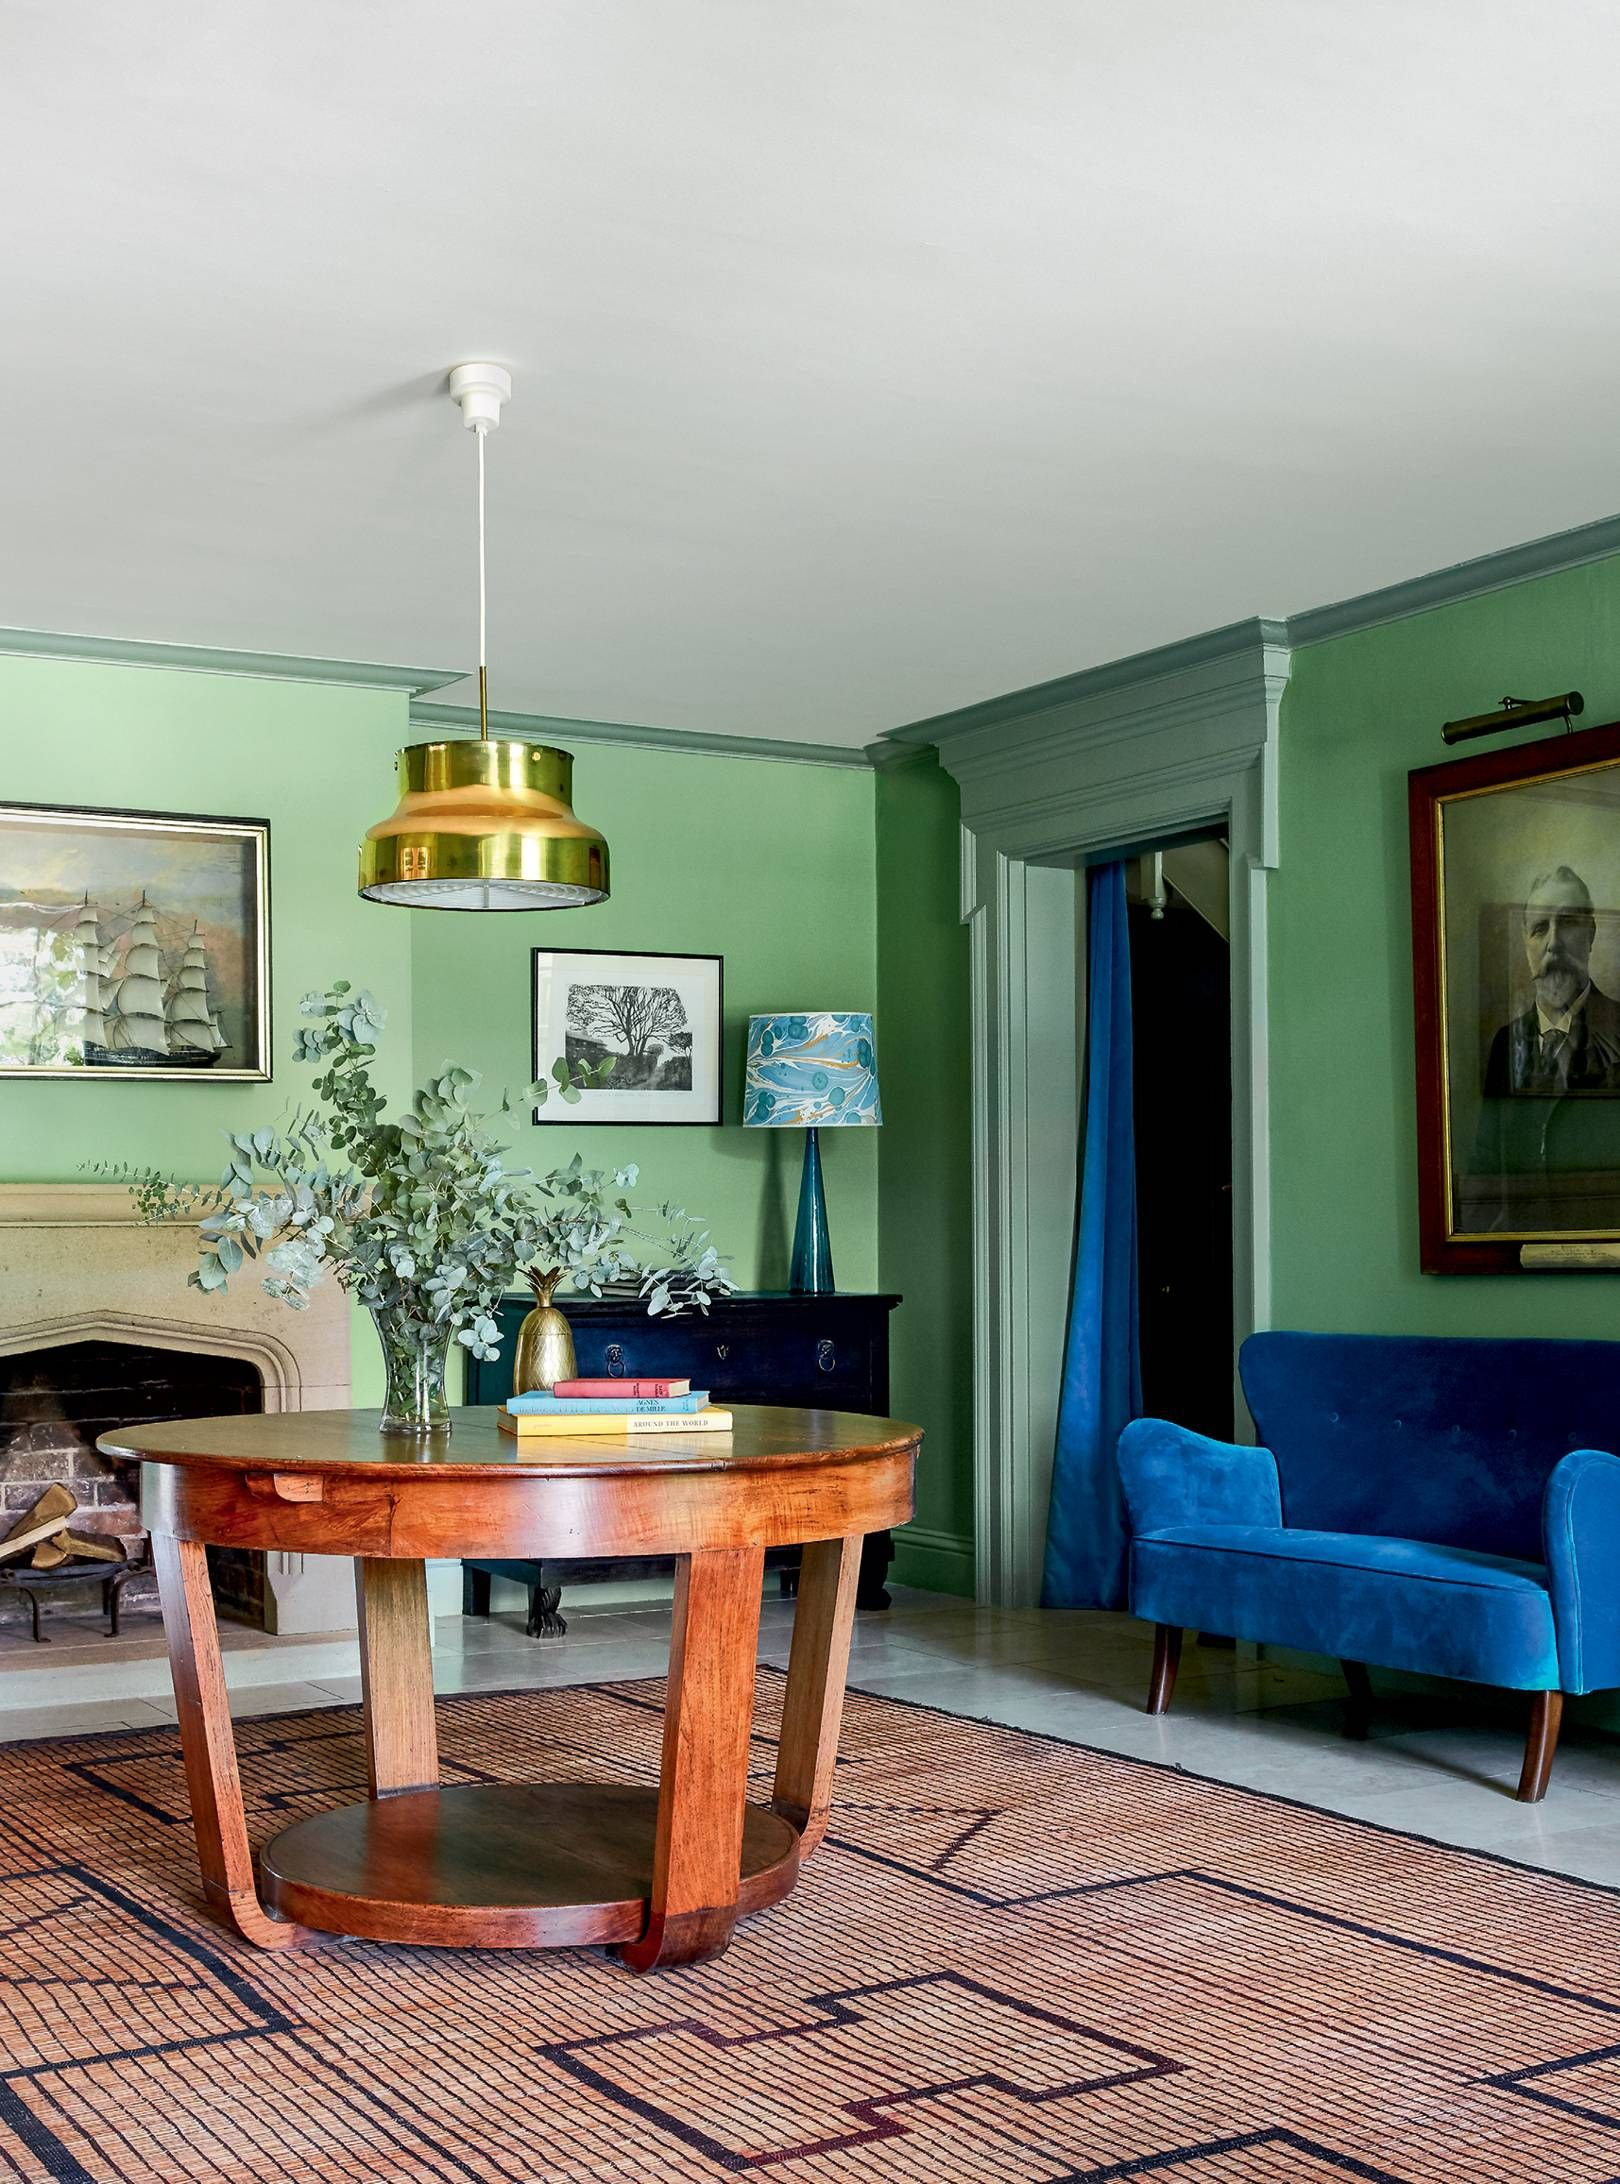 Top Stories Of 2020 A Modern Country House Packed With Unexpected Colour By Nicola Harding Country Modern Home Eclectic Interior Interior Design